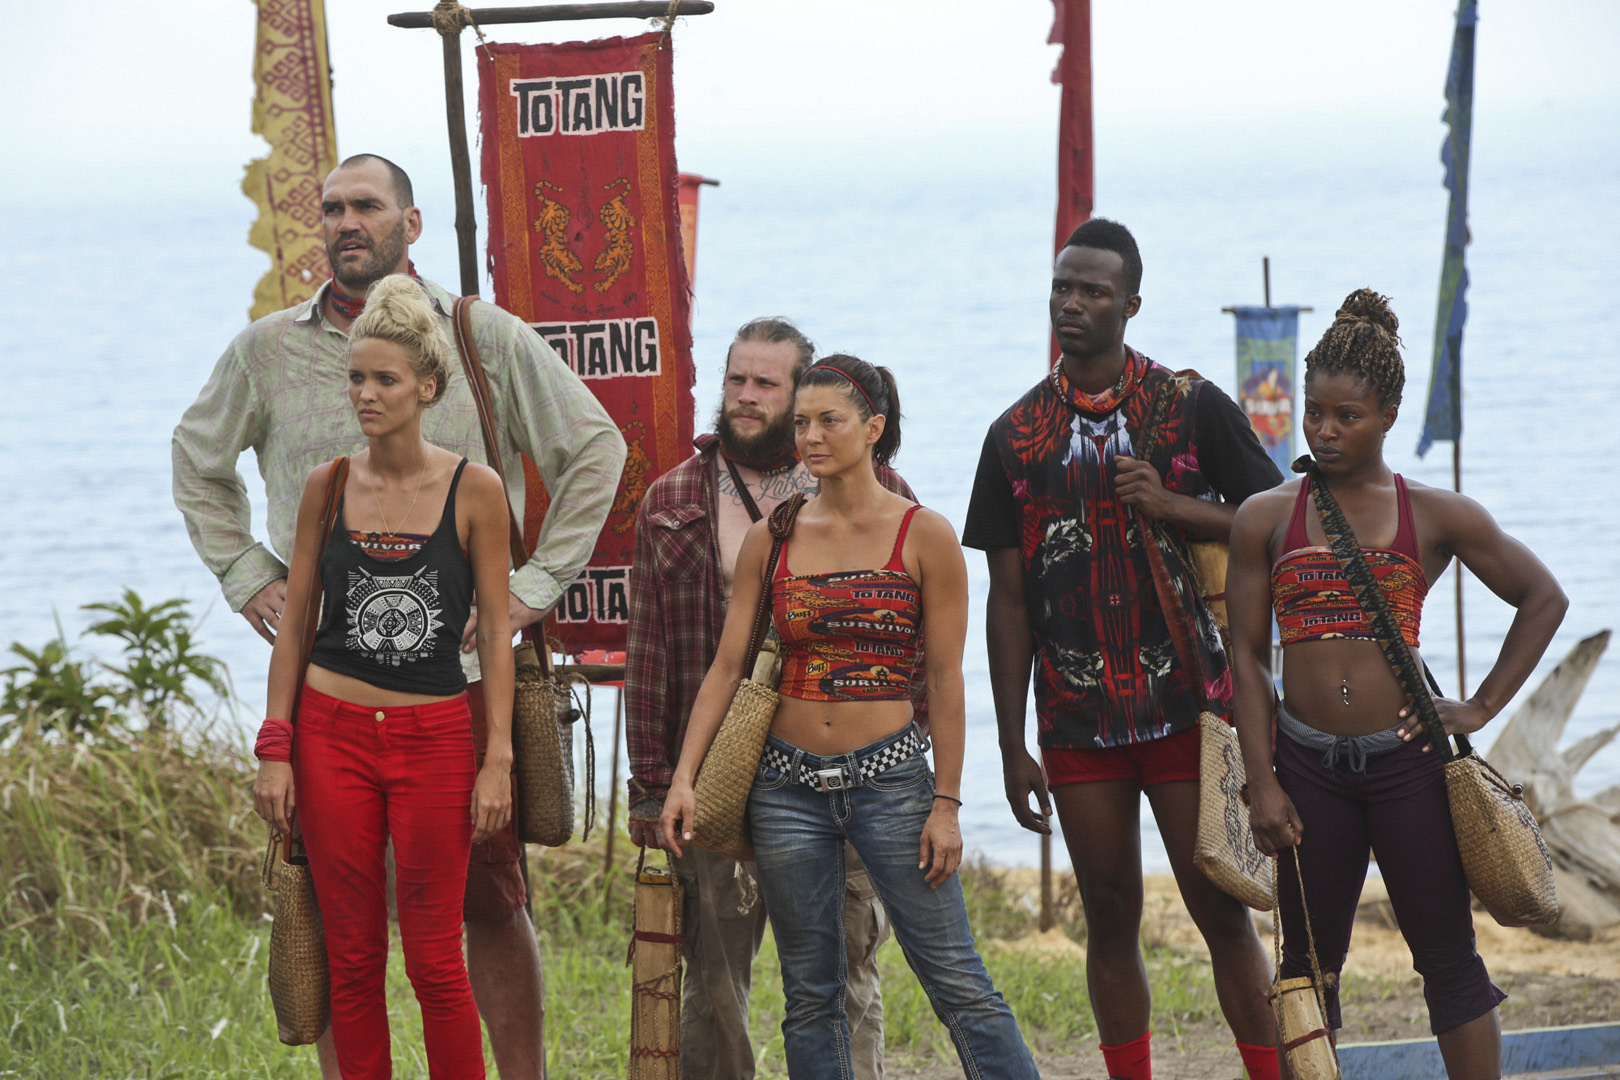 The six members of the Brawn Tribe give host Jeff Probst their full attention.